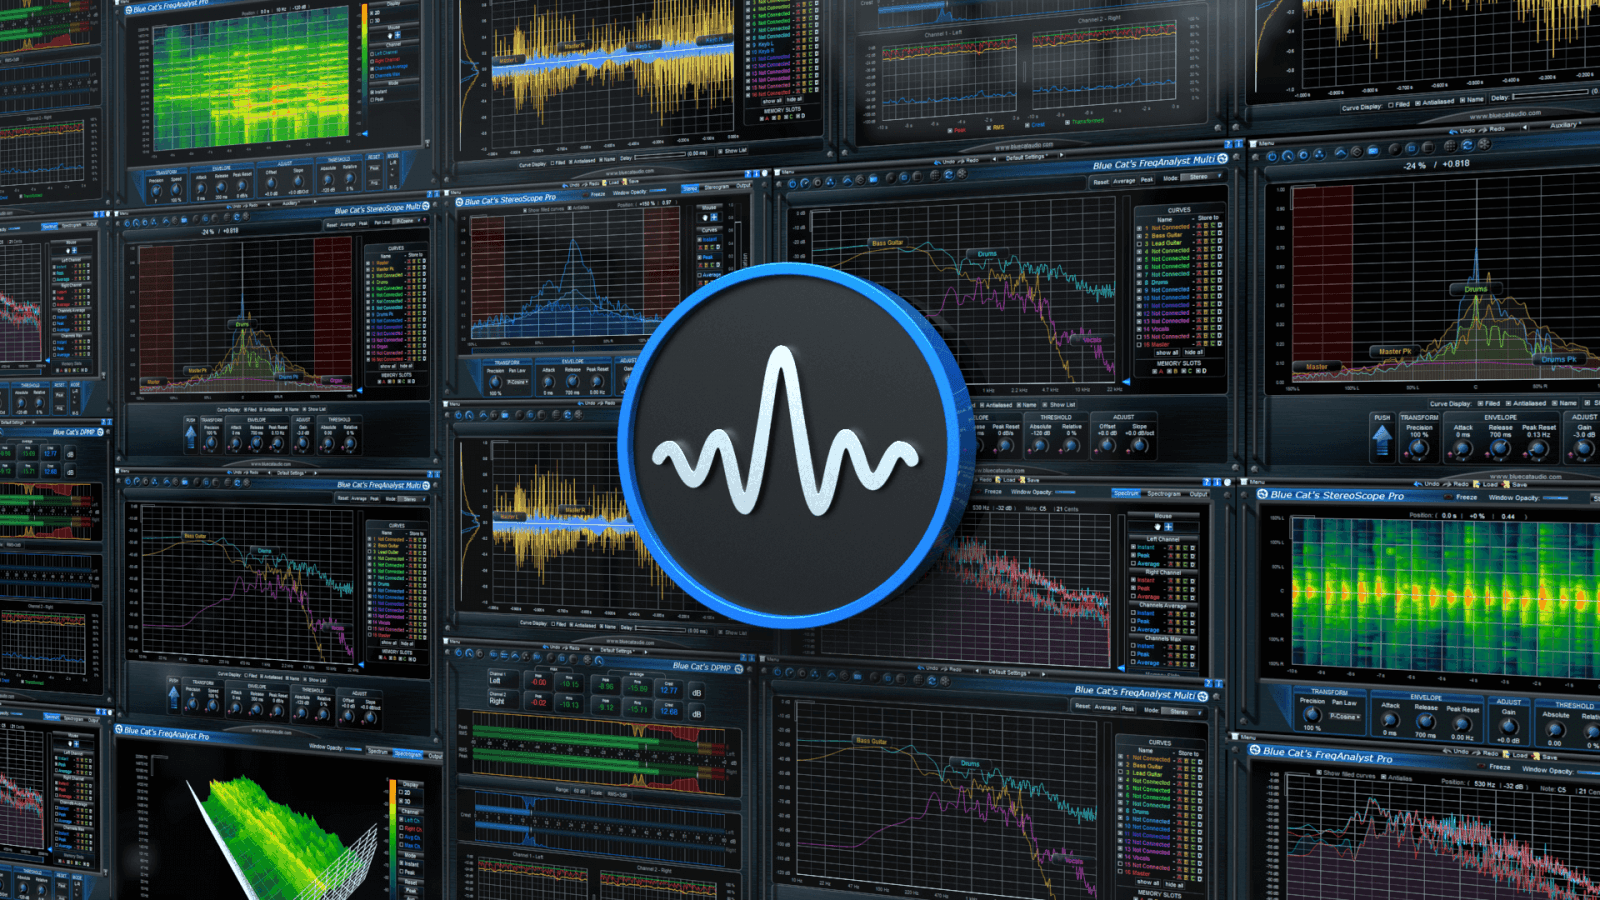 Stocks Trading Software - The Best For Beginners 5